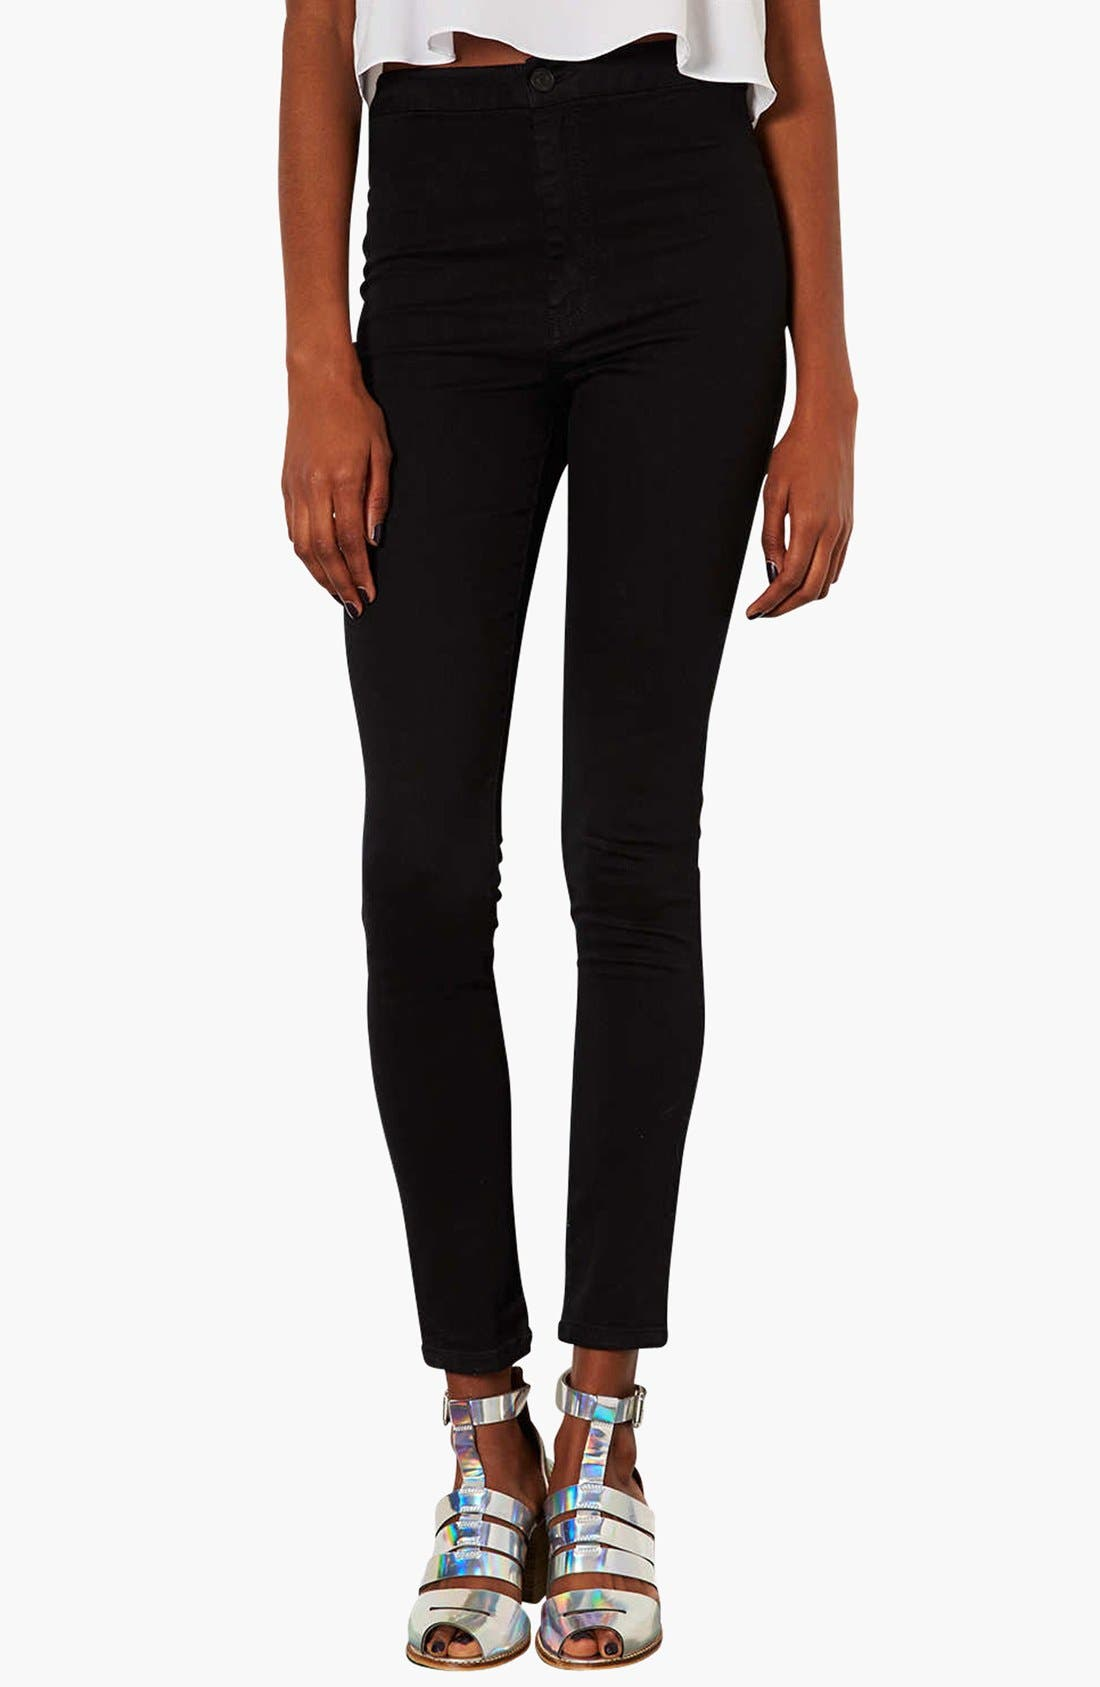 Main Image - Topshop Moto 'Joni' High Rise Skinny Jeans (Regular & Short)